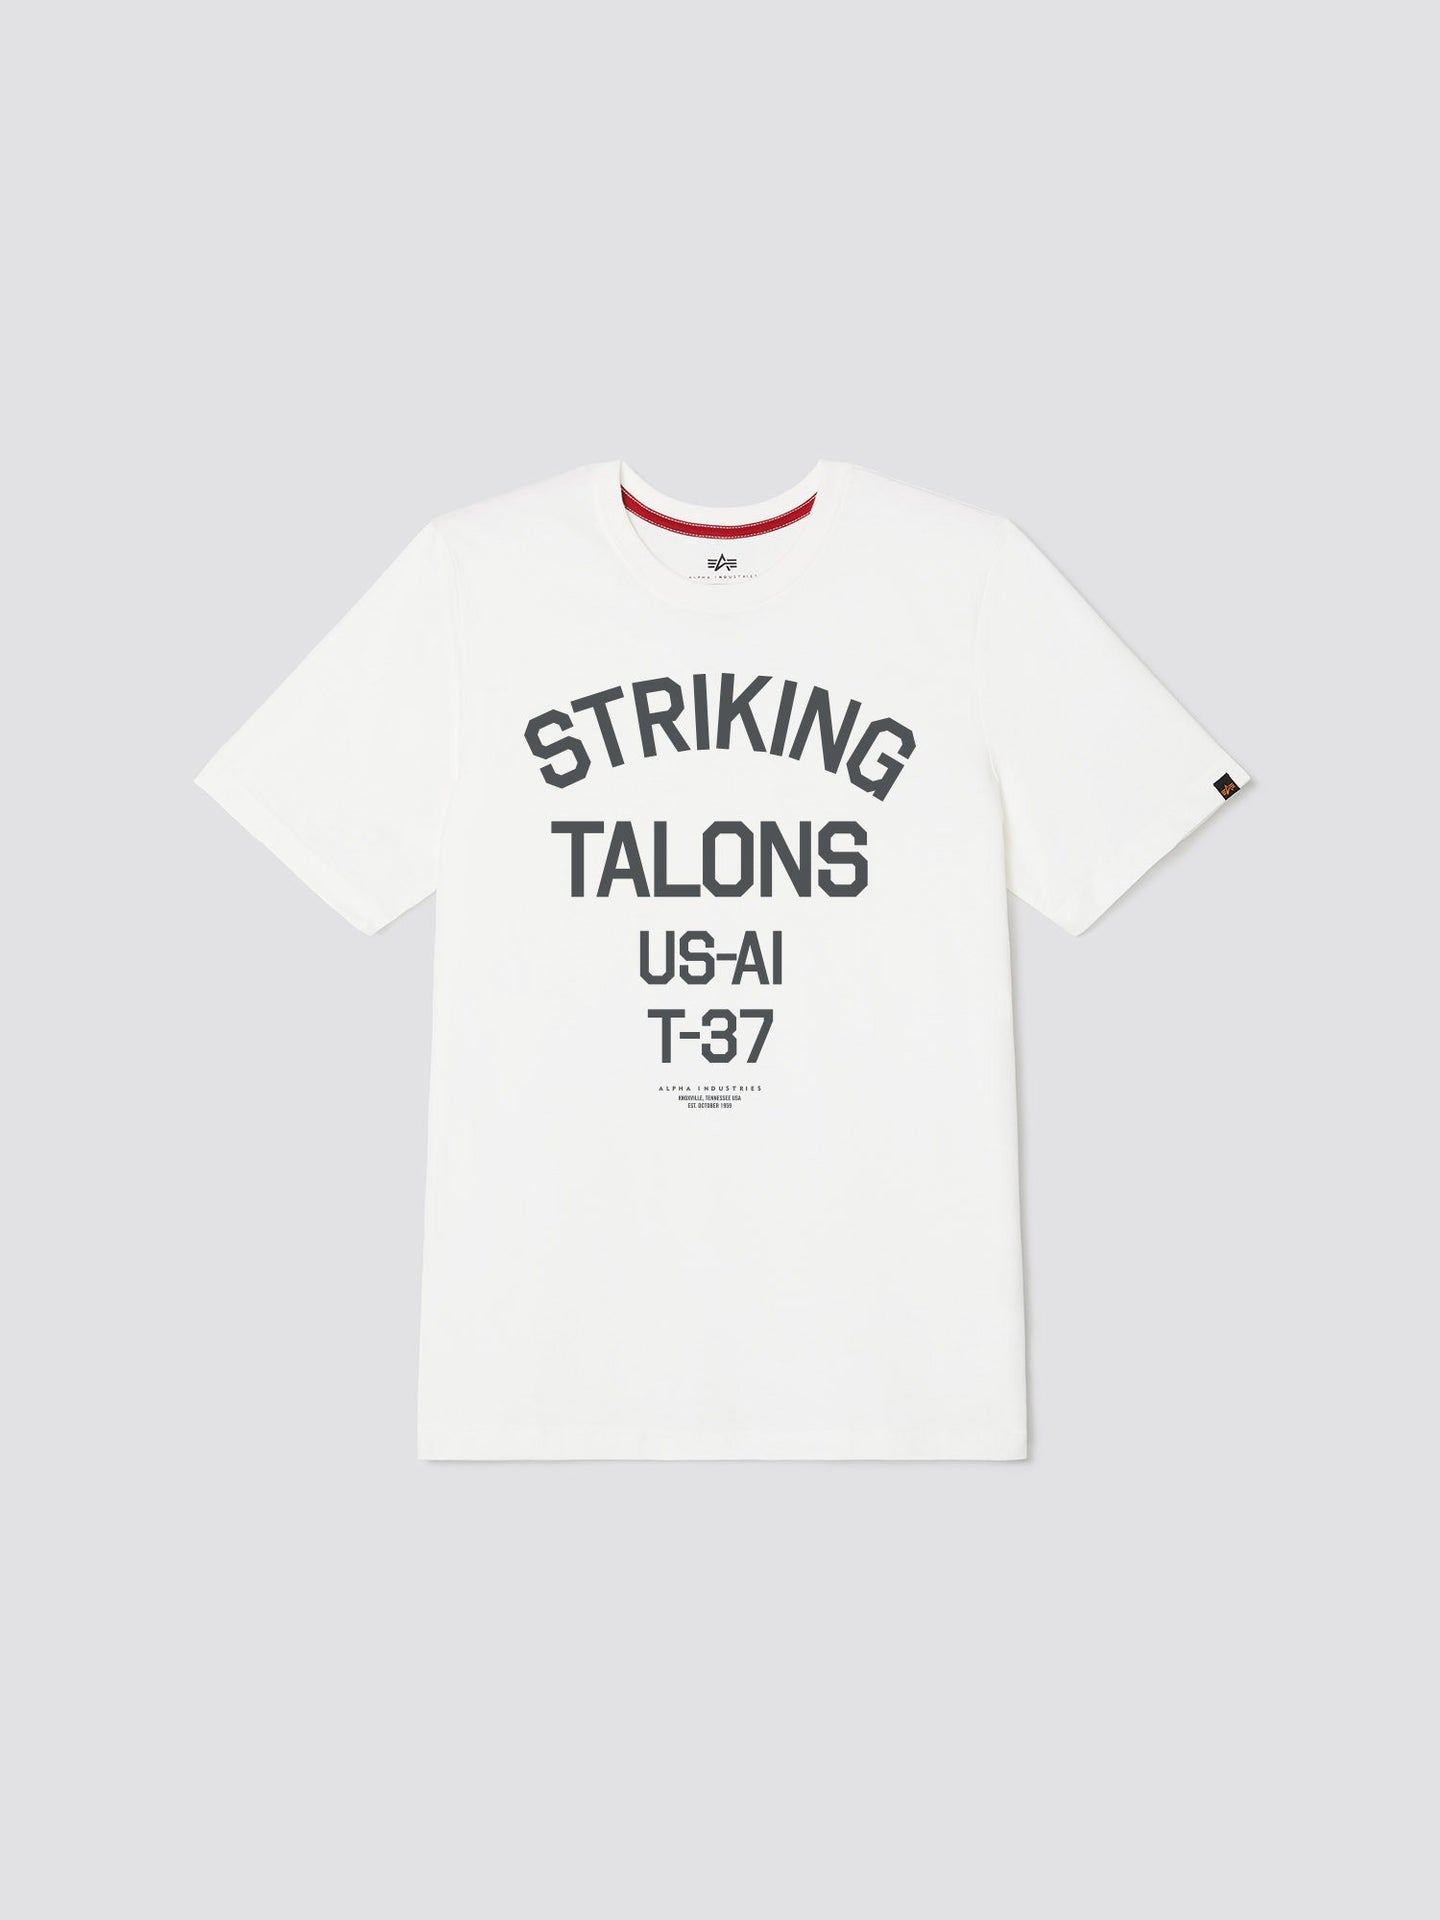 STRIKING TALONS TEE TOP Alpha Industries, Inc. WHITE 2XL